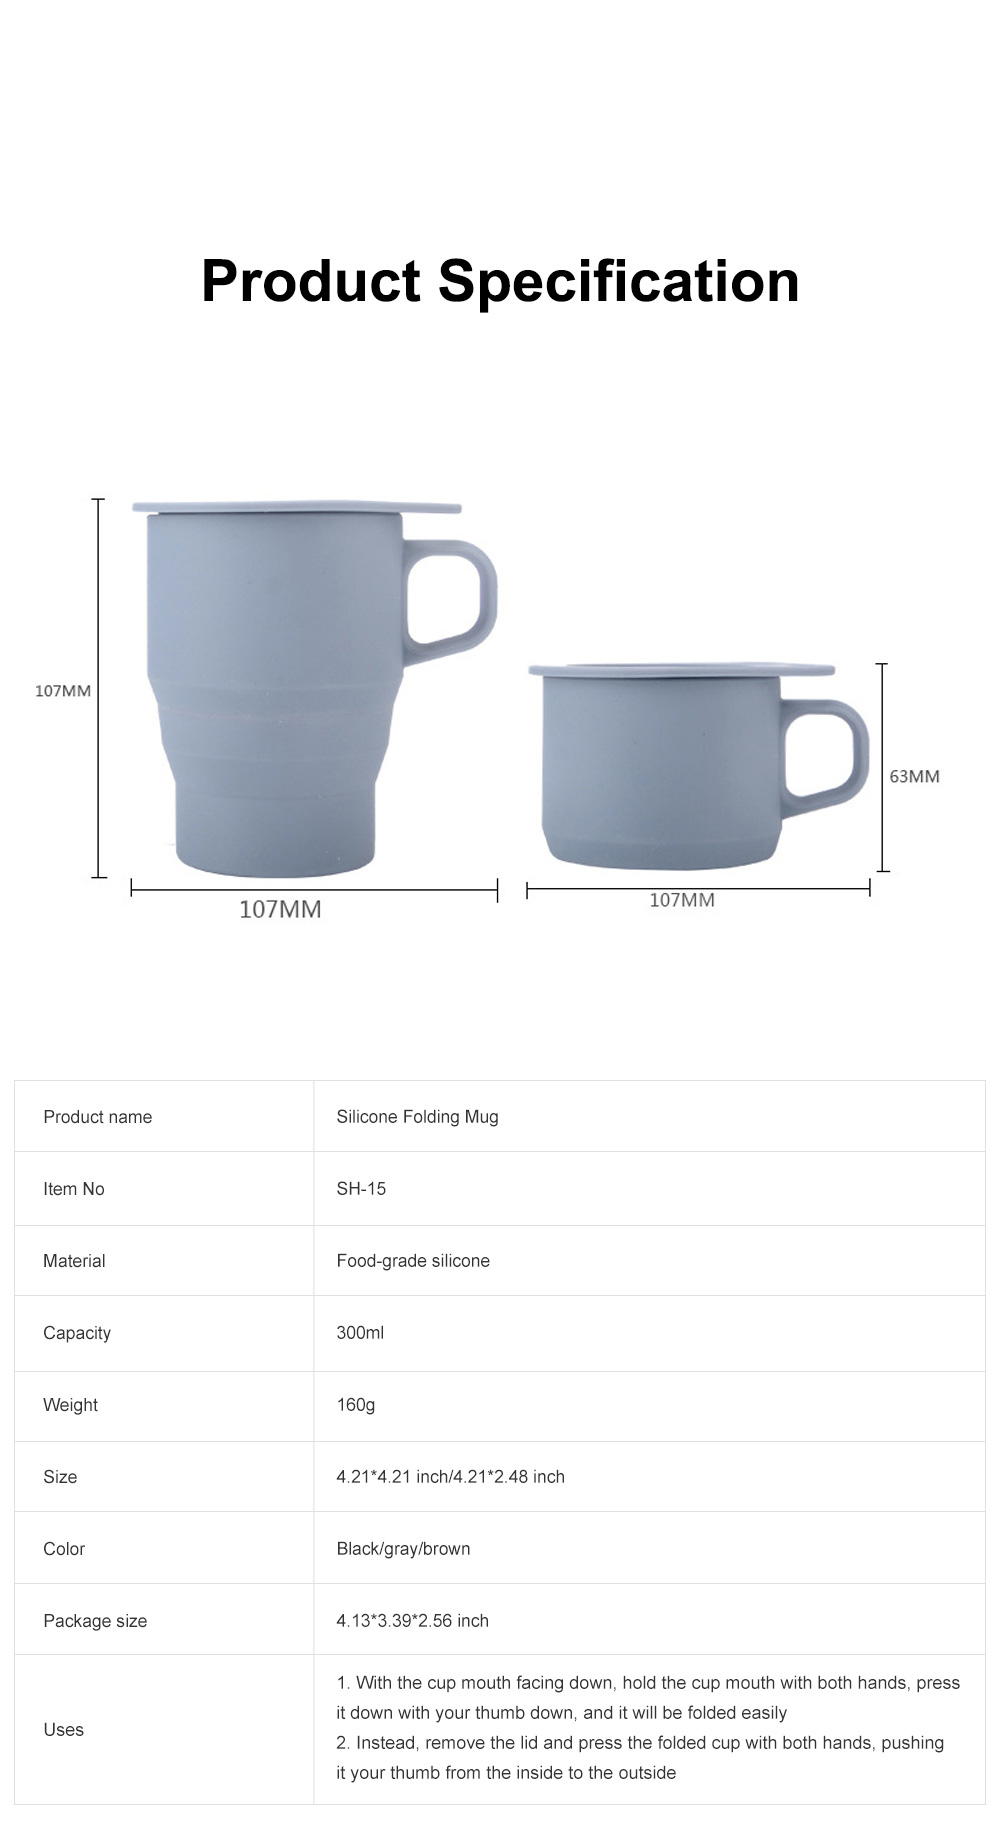 Silicone Folding Mug Cup Collapsible Silicone Coffee Cup with Free Straw Lid for Hiking Camping Travelling 6